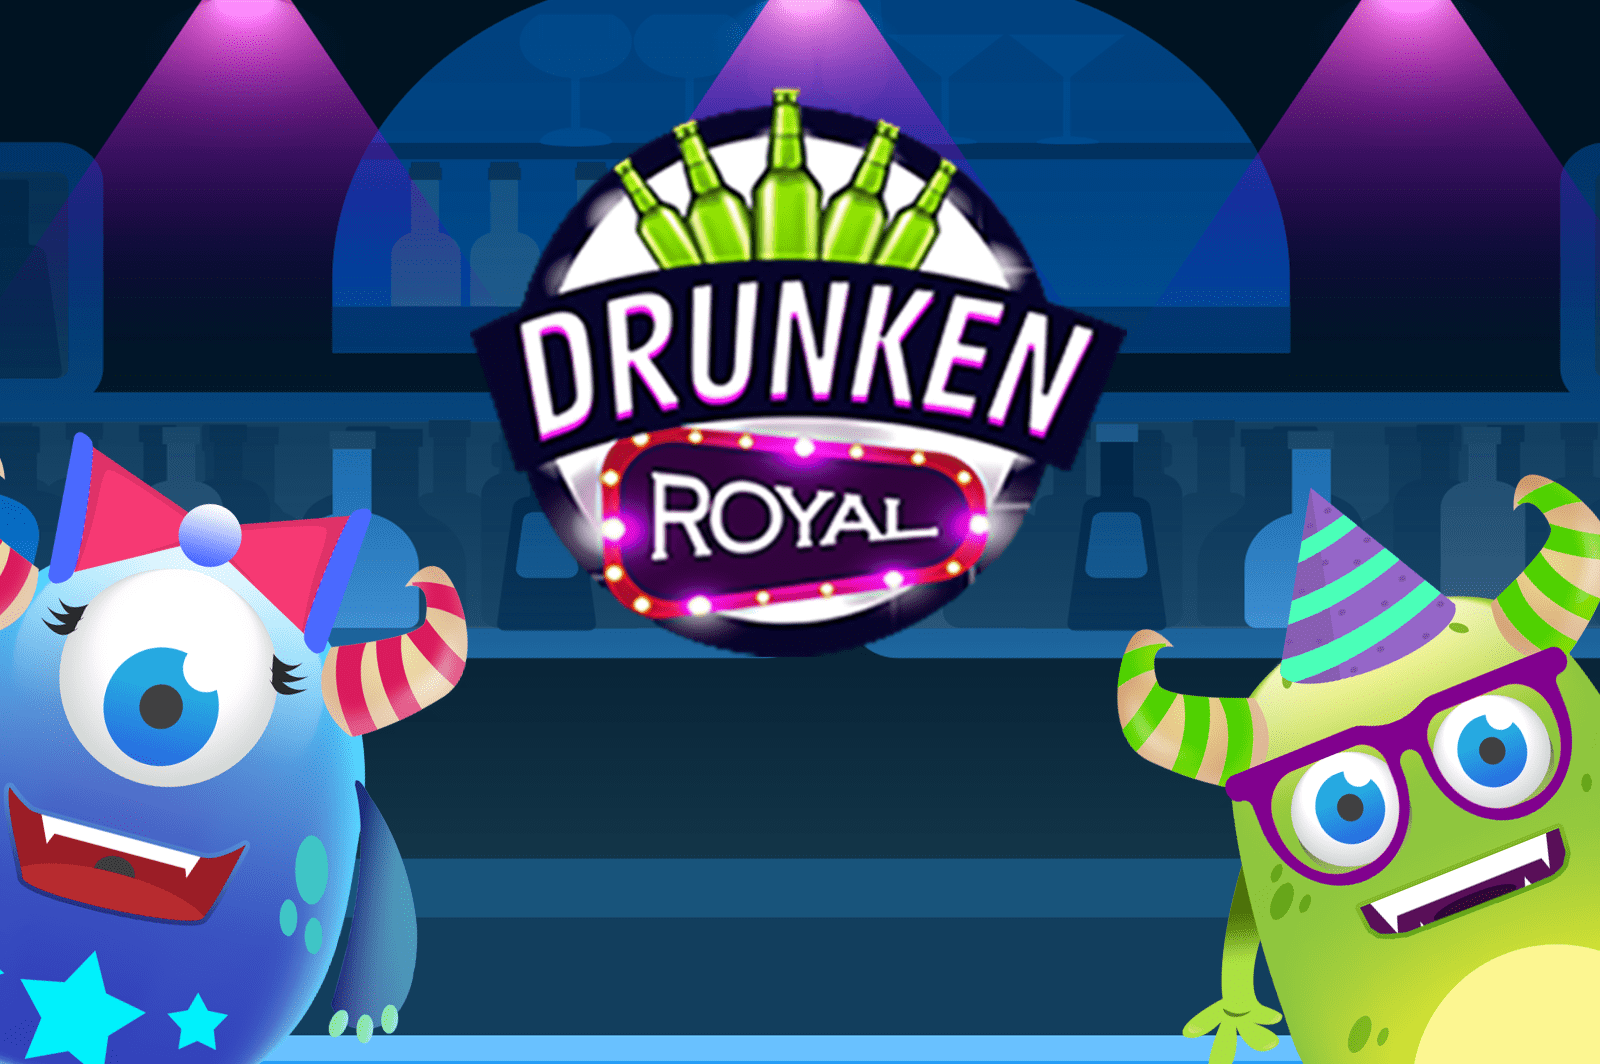 DrunkenRoyal